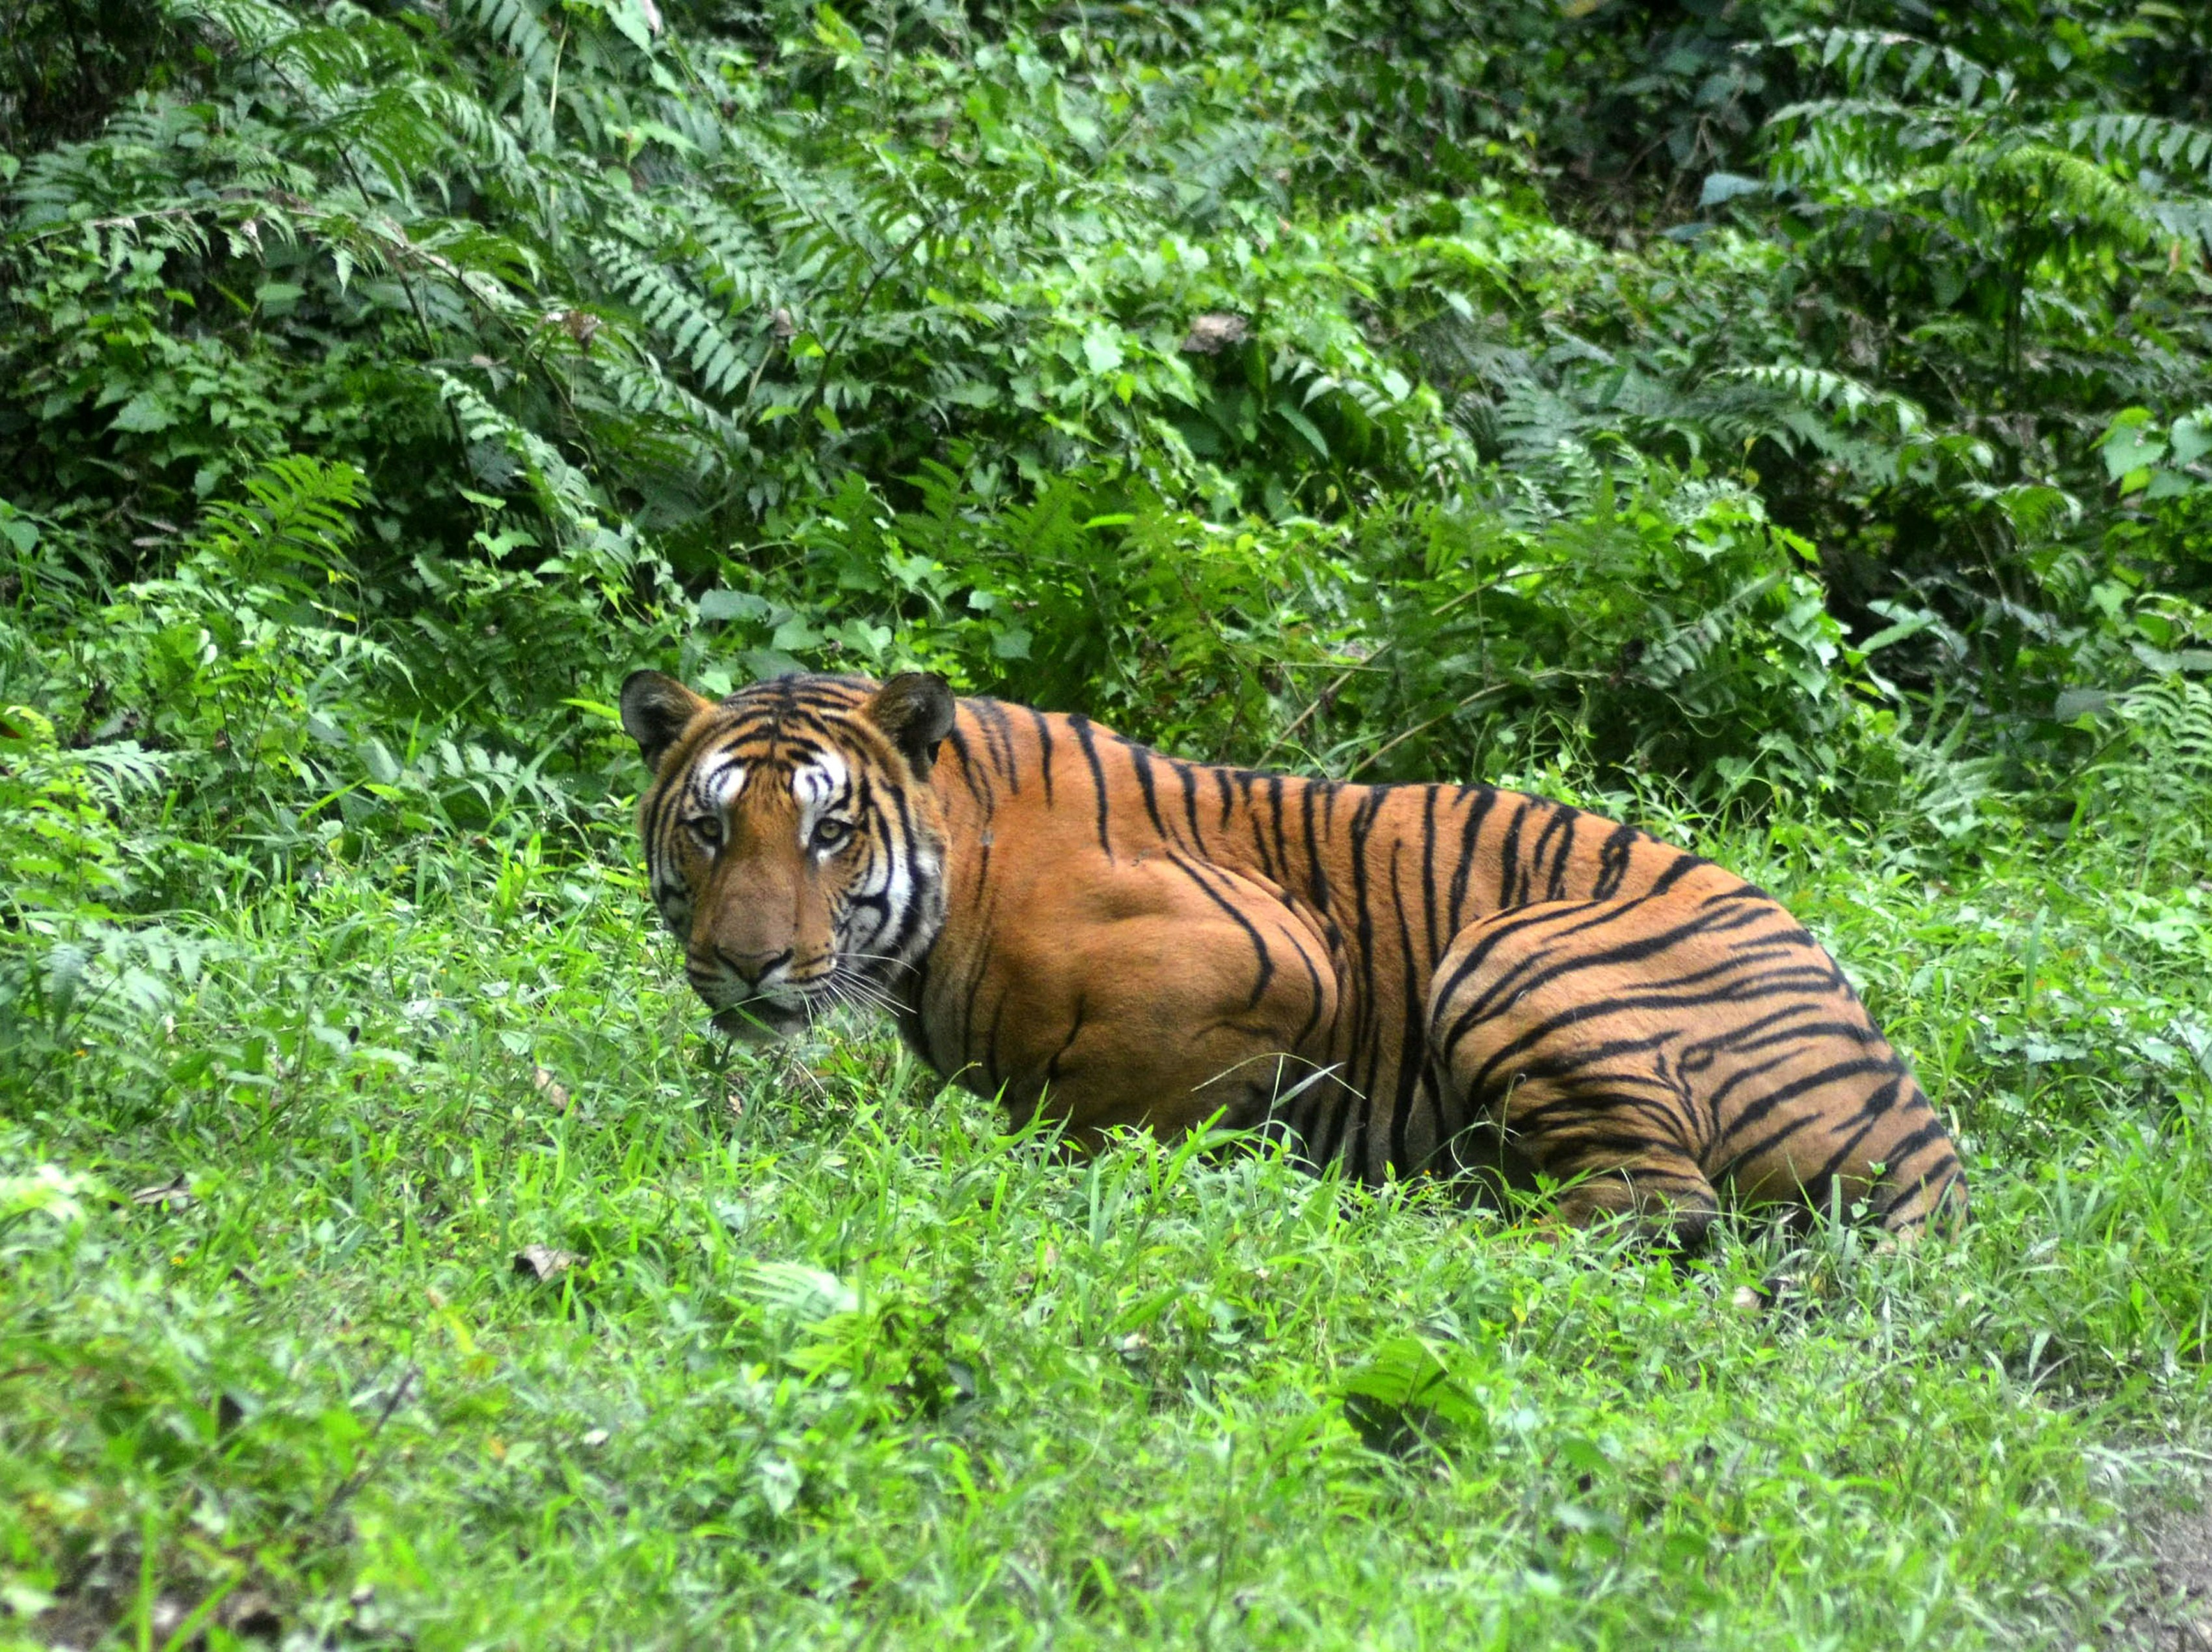 A Royal Bengal Tiger pauses in a jungle clearing in Kaziranga National Park, some 280 km east of Guwahati, India, In this photograph taken on Dec. 21, 2014